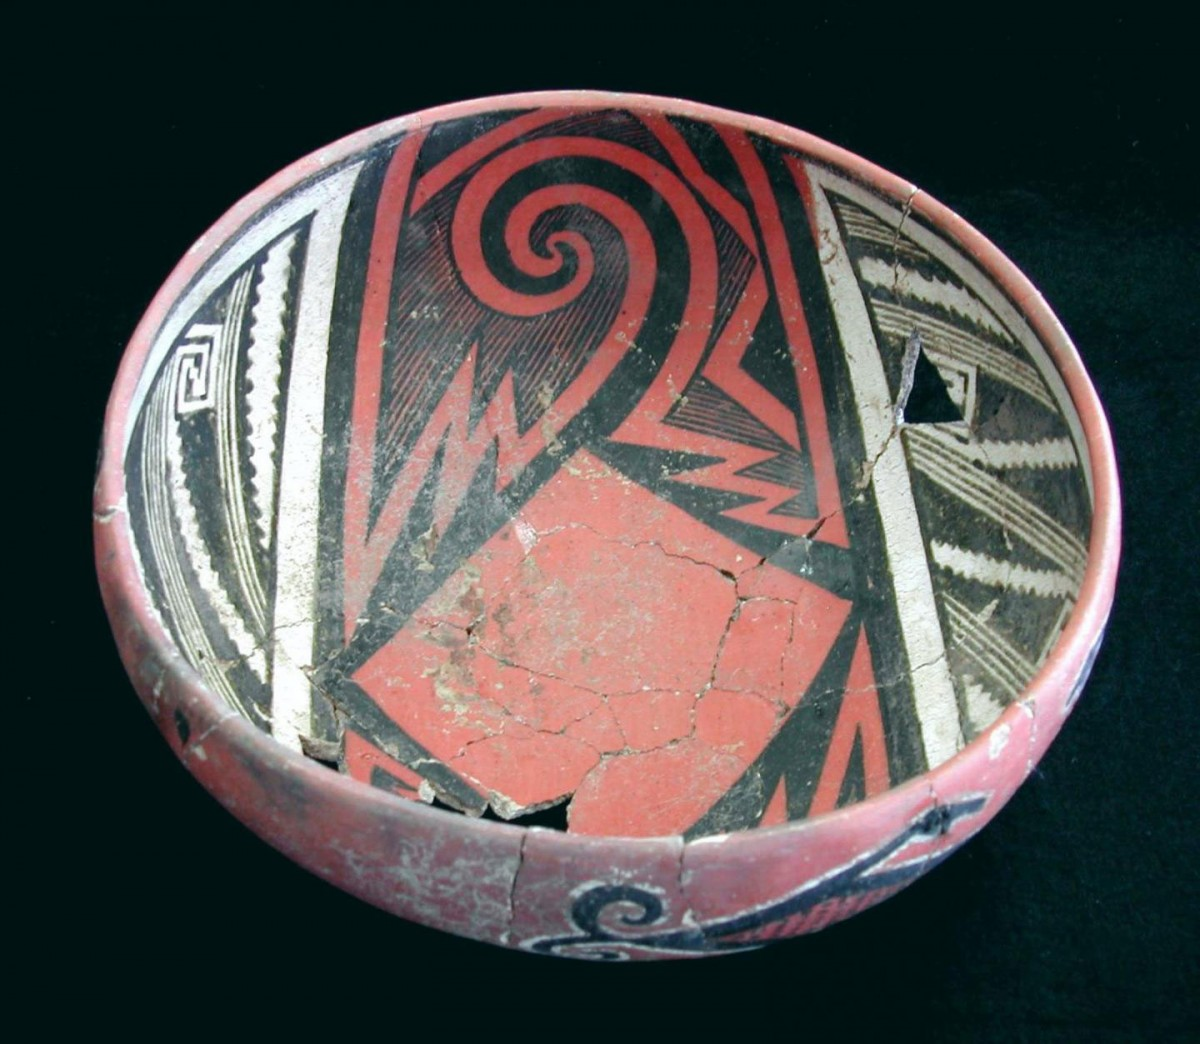 This is a Pinedale Polychrome bowl from the Bailey Ruin, AD 1275-1325. This type of vessel was made during the megadrought that hit the Southwest from A.D. 1276-1299. The distribution of this type outside of its area of production was one of the ways that people kept connected during and after the drought. Credit: Barbara Mills/University of Arizona.